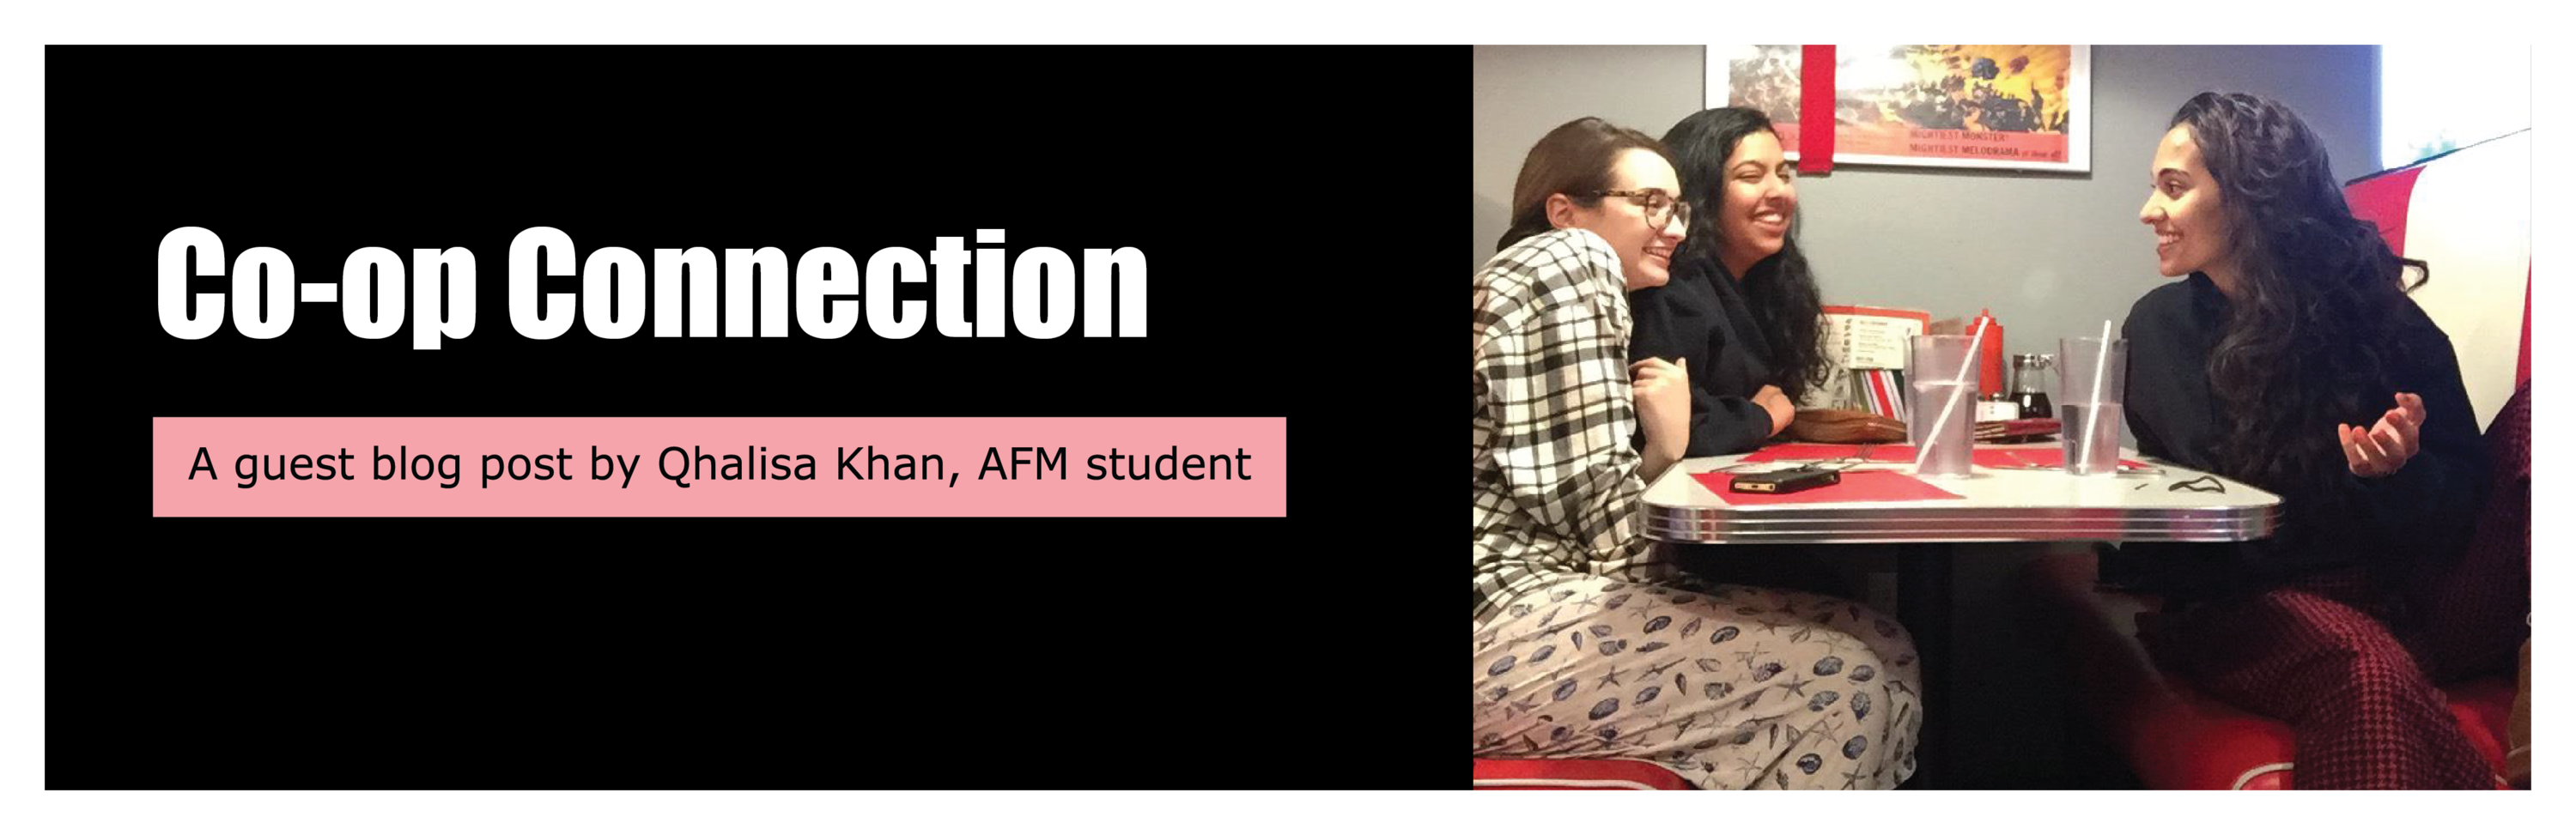 Co-op connection, a guest blog by Qhalisa Khan, AFM student